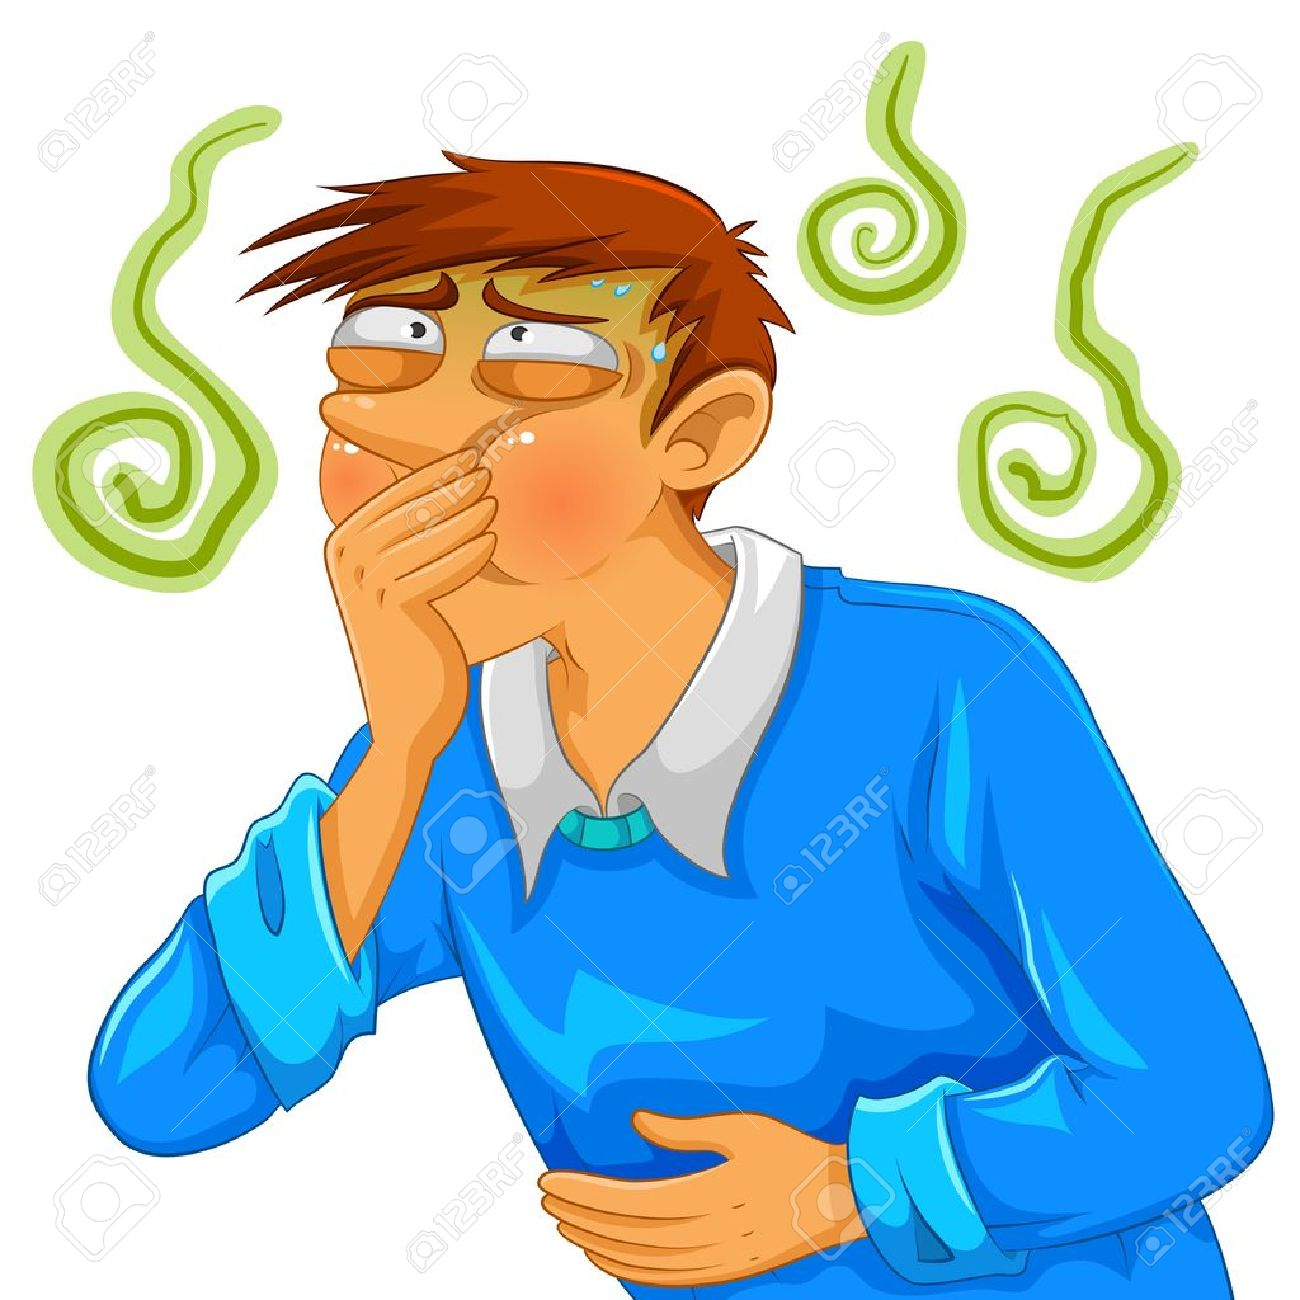 Nausea and vomiting clipart 7 » Clipart Station.